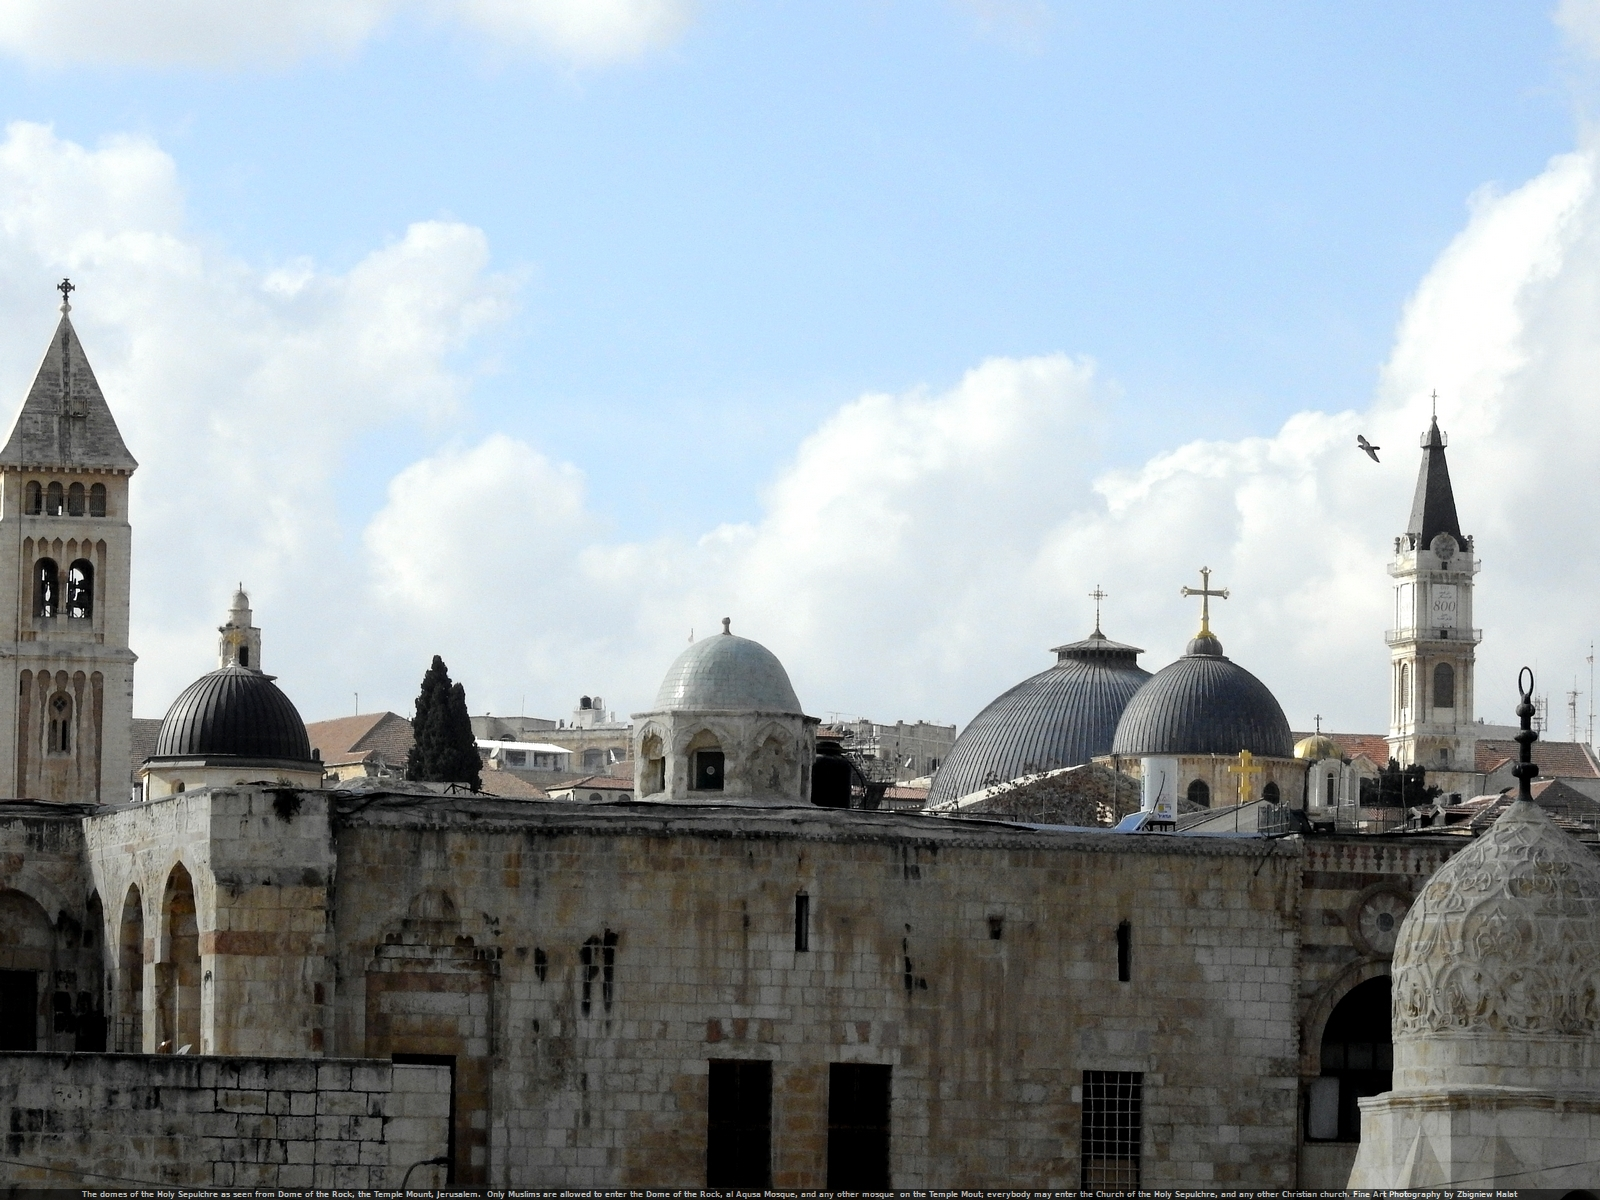 The domes of the Holy Sepulchre (note the Cross over the Catholicon; the Cross of Golgotha - symbol of the efforts of unity in the community of Christian faith) as seen from Dome of the Rock, the Temple Mount, Jerusalem.  Only Muslims are allowed to enter the Dome of the Rock, al Aqusa Mosque, and any other mosque  on the Temple Mout; everybody may enter the Church of the Holy Sepulchre, and any other Christian church. Fine Art Photography by Zbigniew Halat